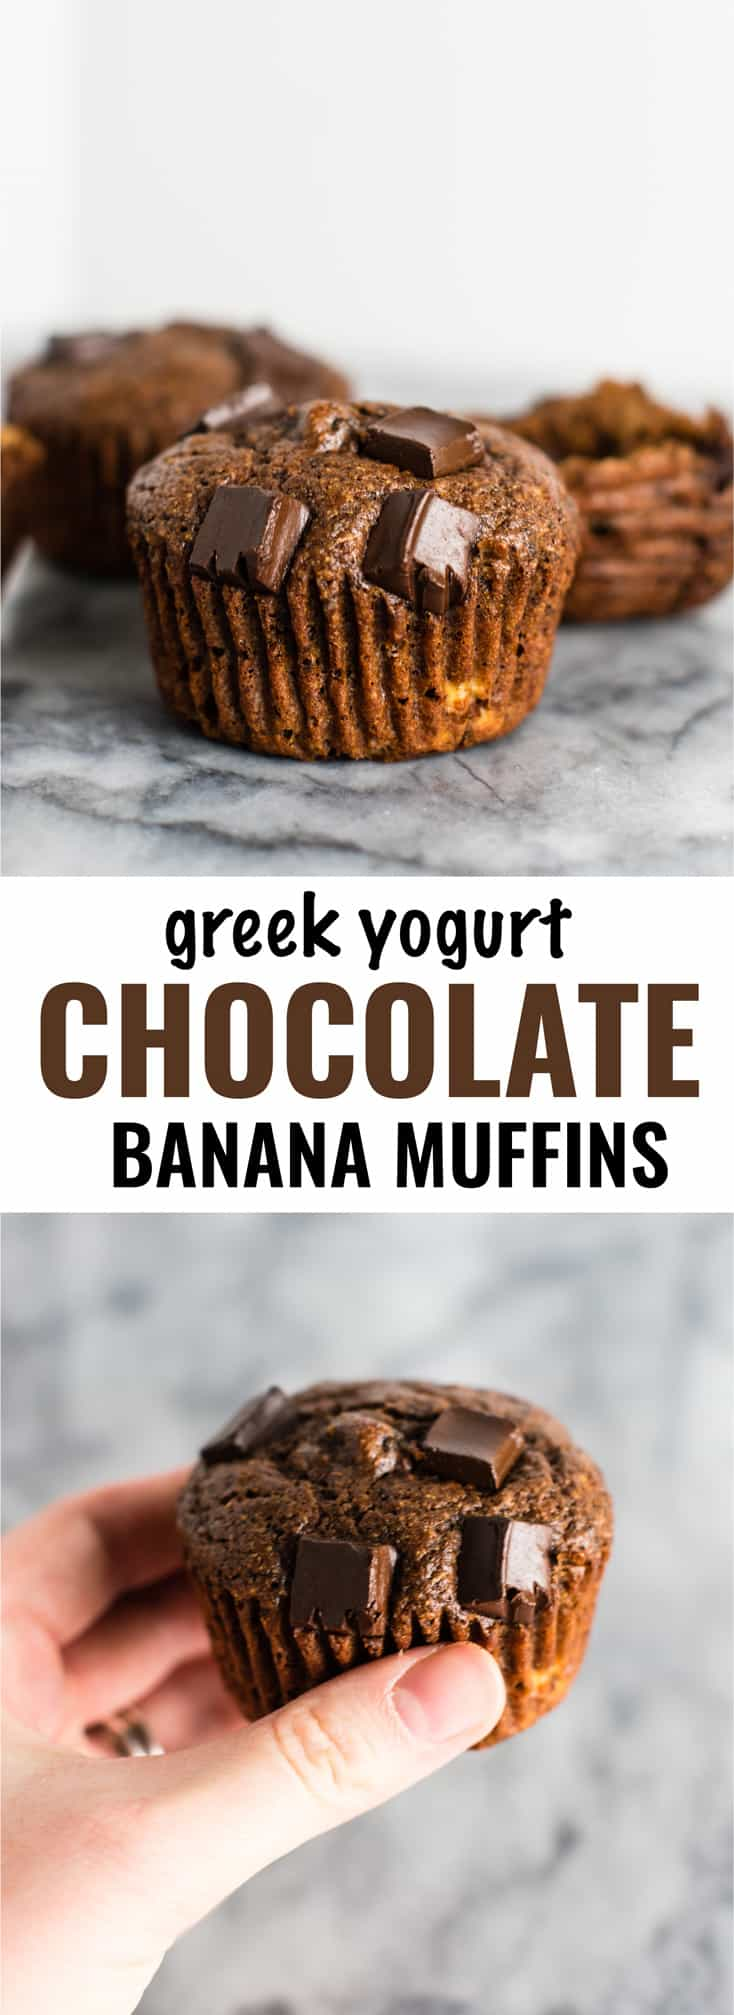 Recipe Banana Cake Muffins Chocolate Greek Yogourt